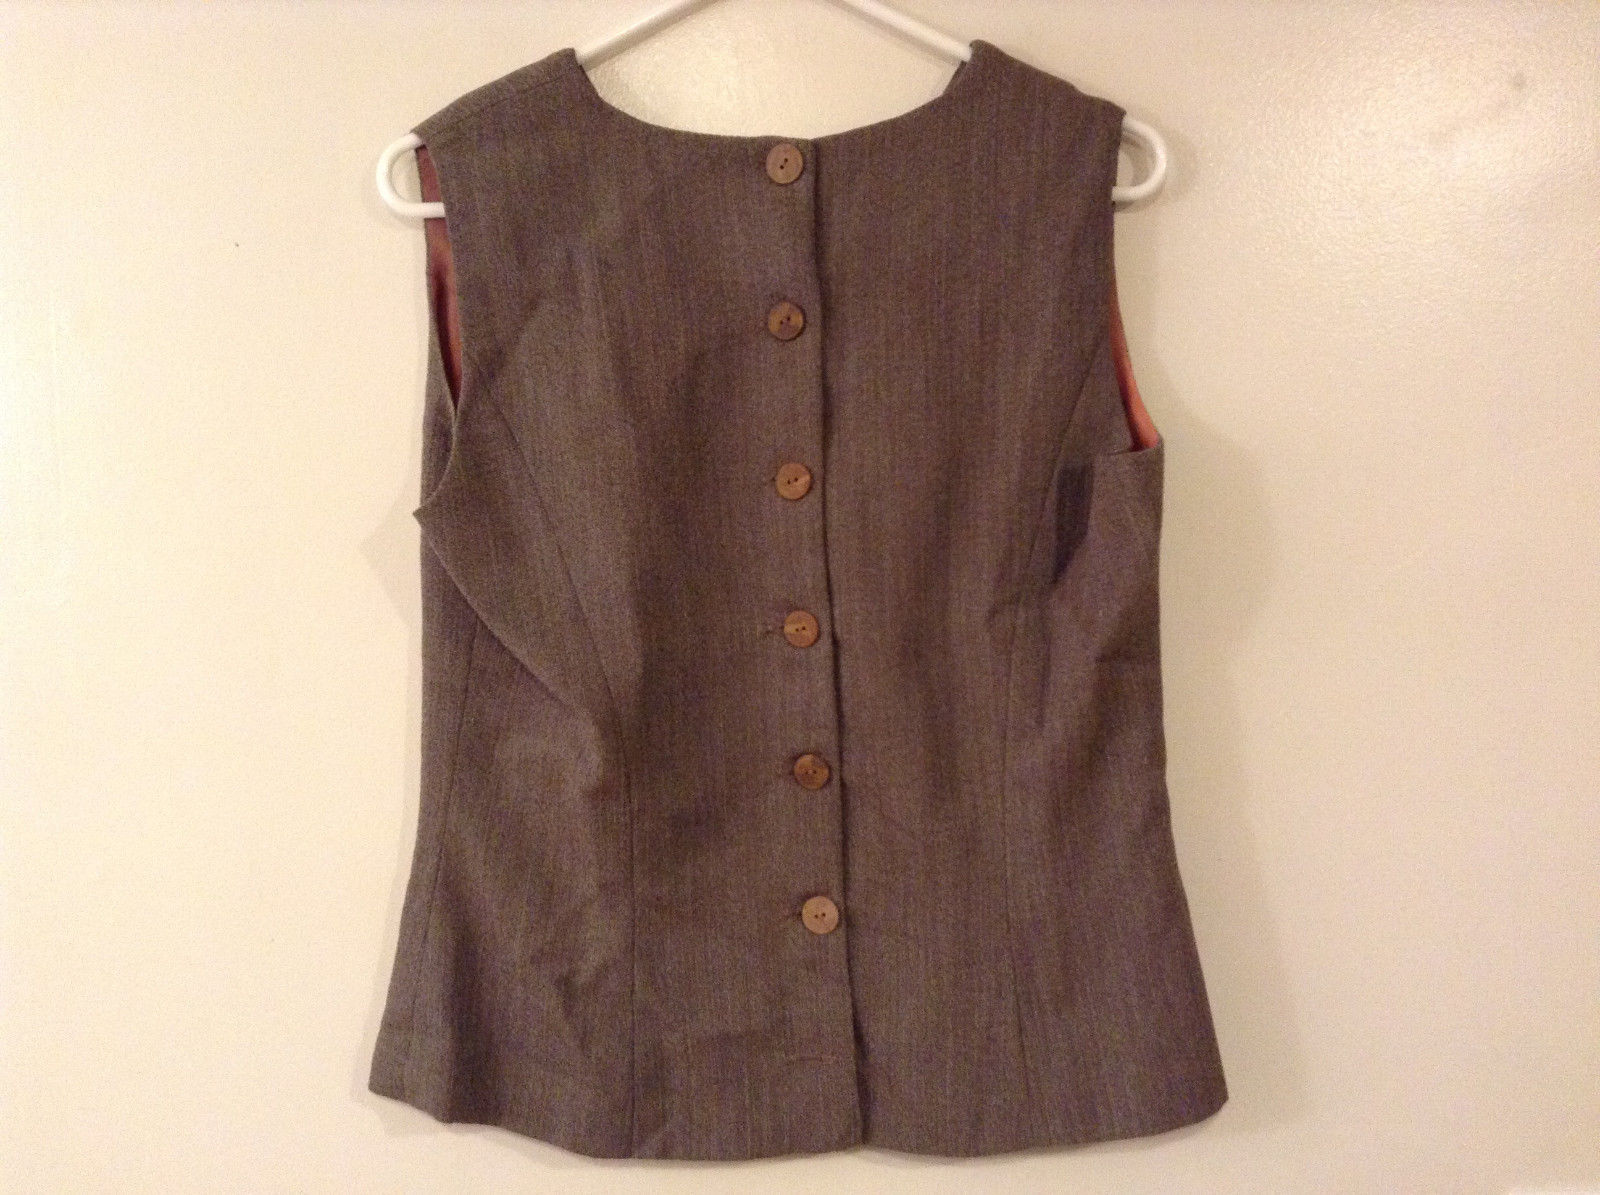 Brand Unknown Ladies Size M Sleeveless Vest Tan Brown Tweed Look Buttons Closure